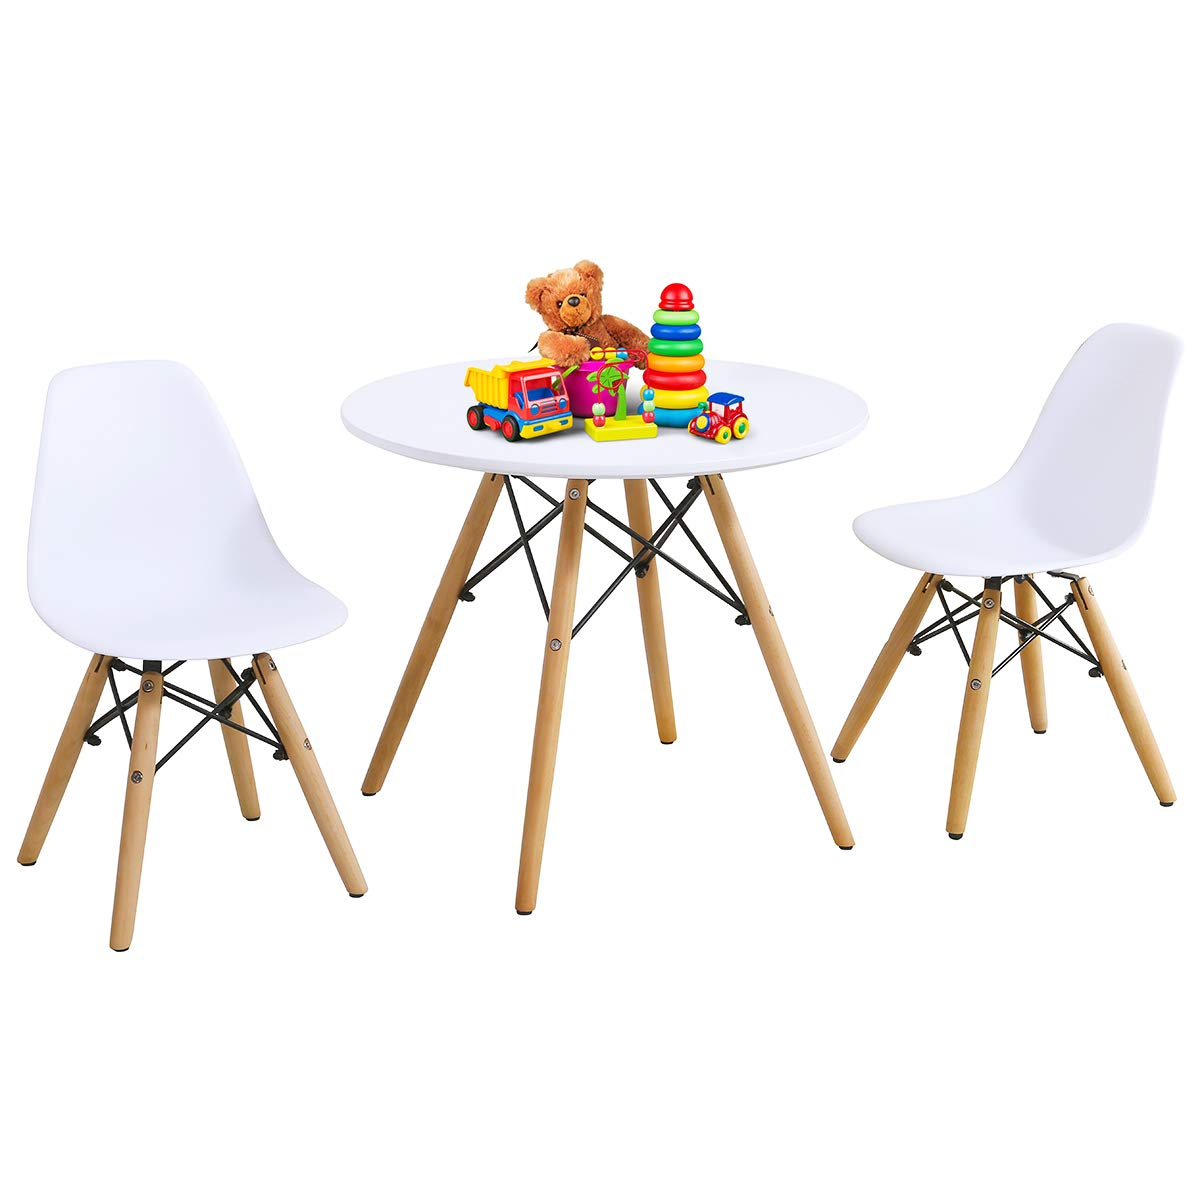 Costzon Kids Table and Chair Set, Kids Mid-Century Modern Style Table Set for Toddler Children, Kids Dining Table and Chair Set, 3-Piece Set (White, Table & 2 Chairs) by Costzon